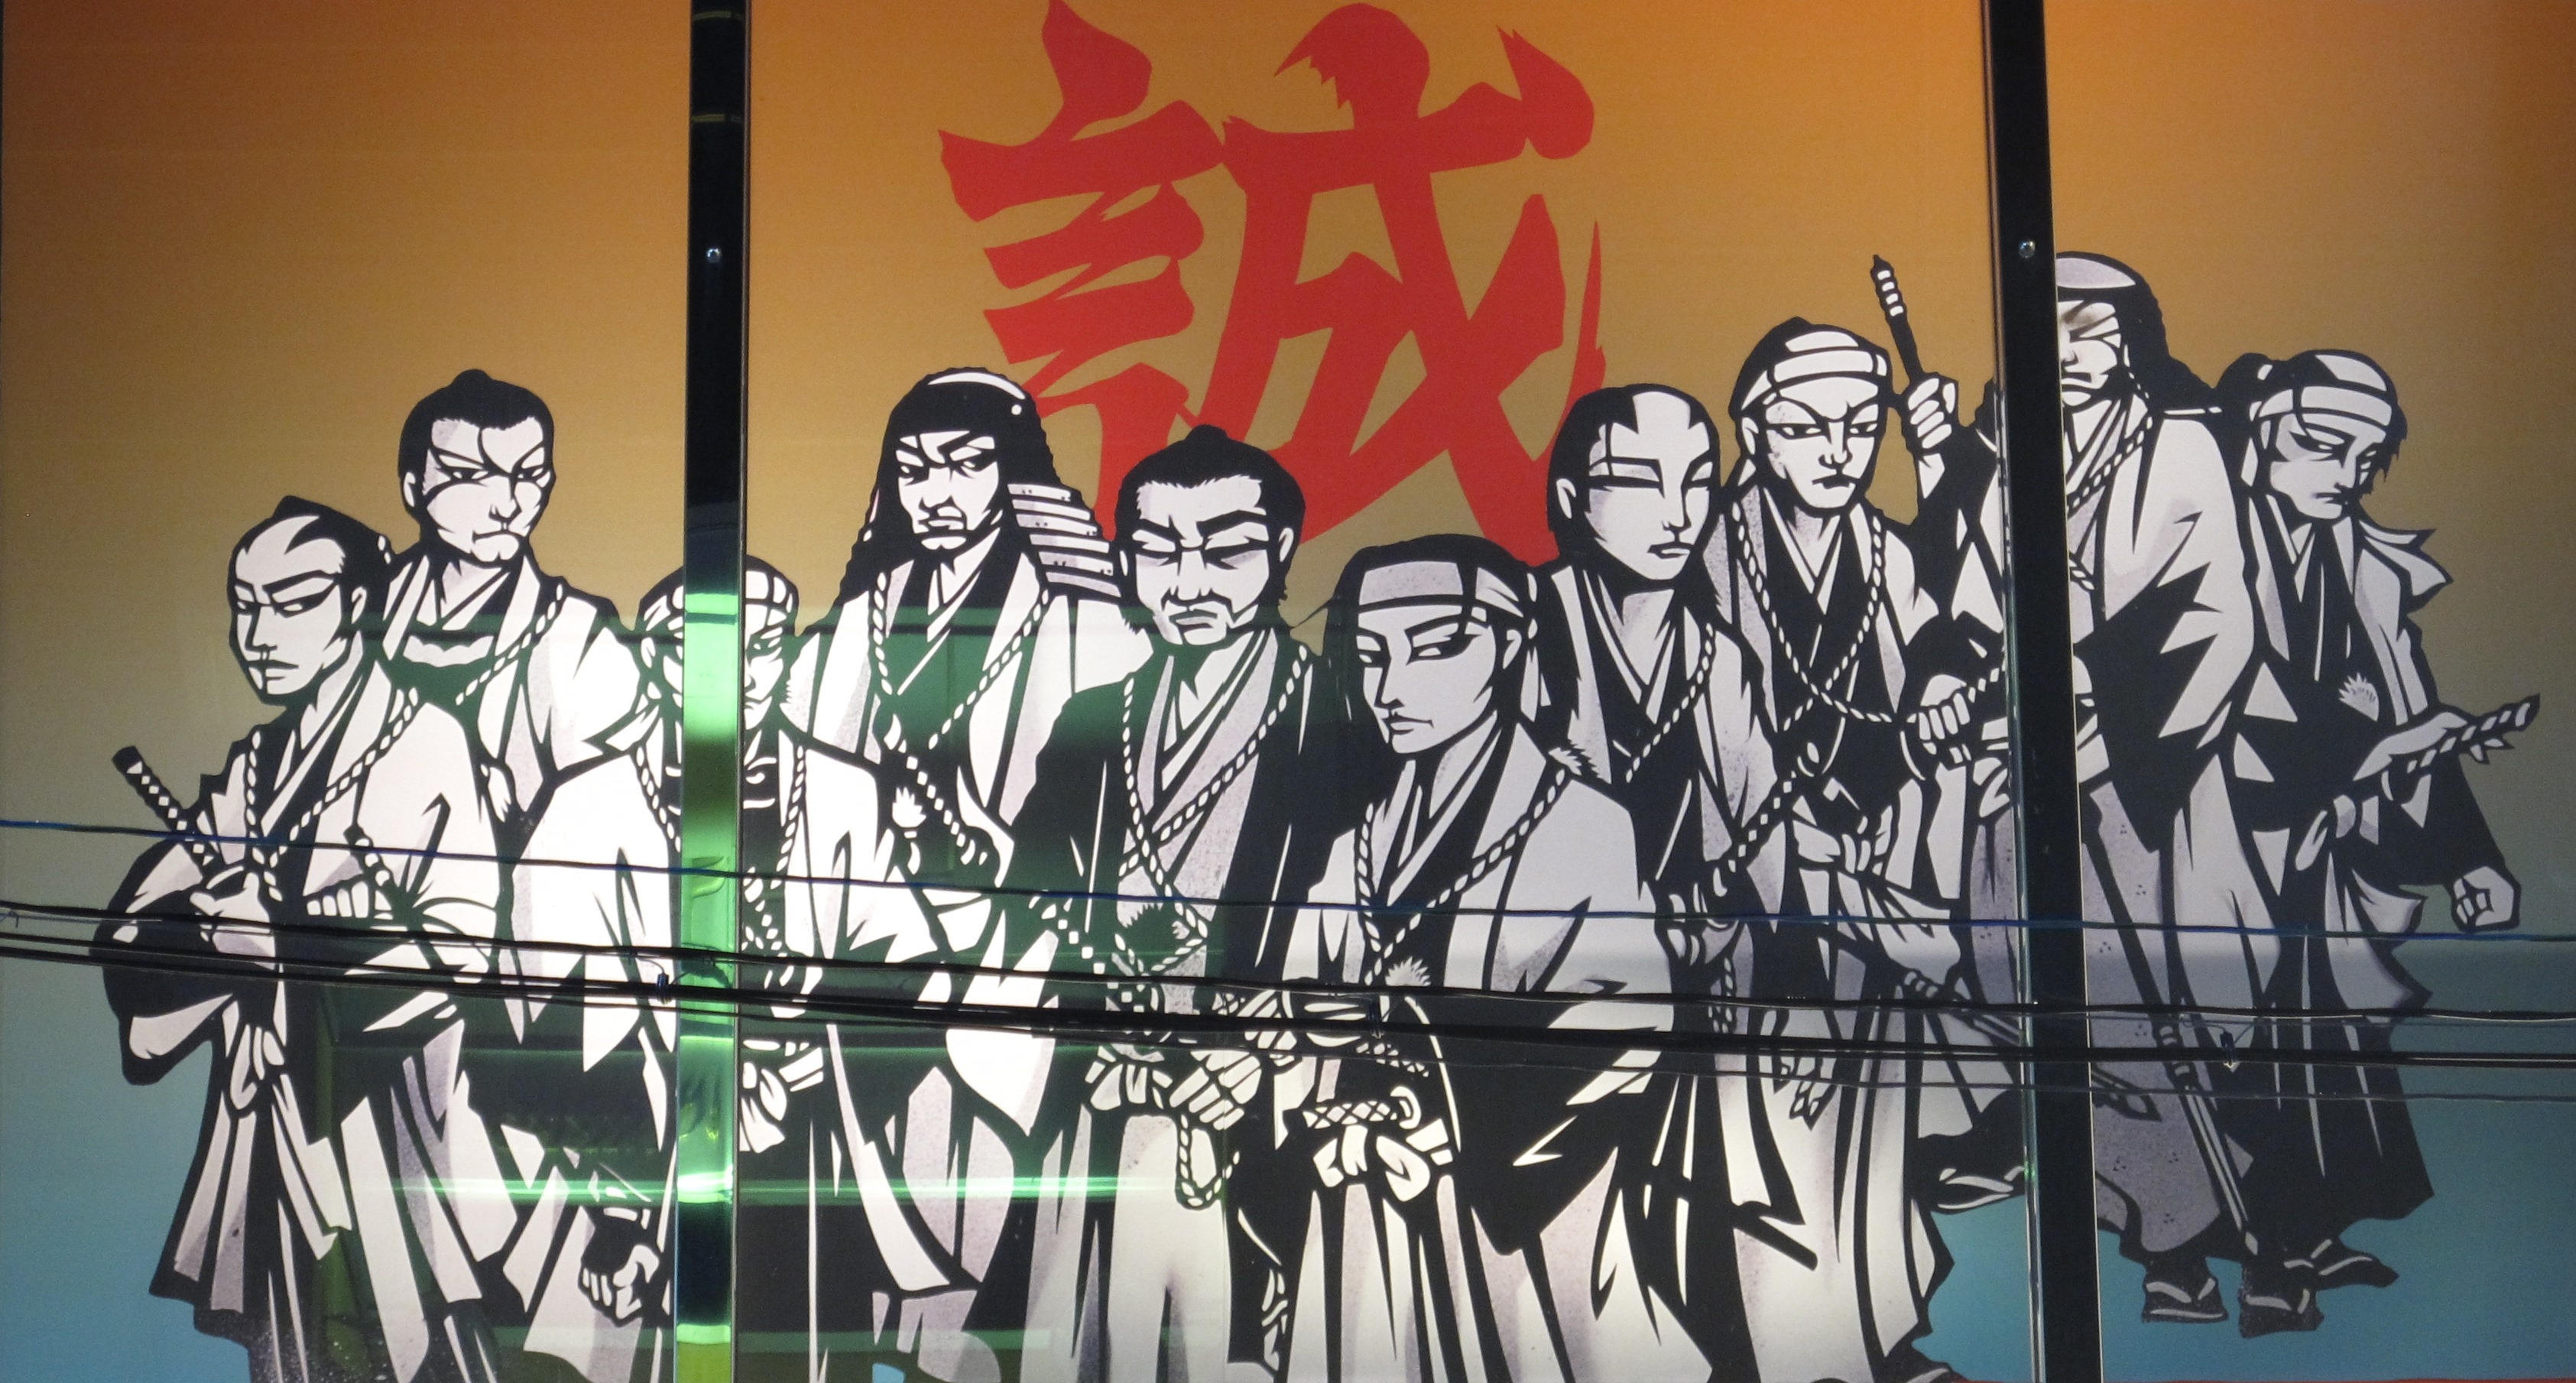 The Shinsengumi as depicted at the modern day Ikedaya restaurant.